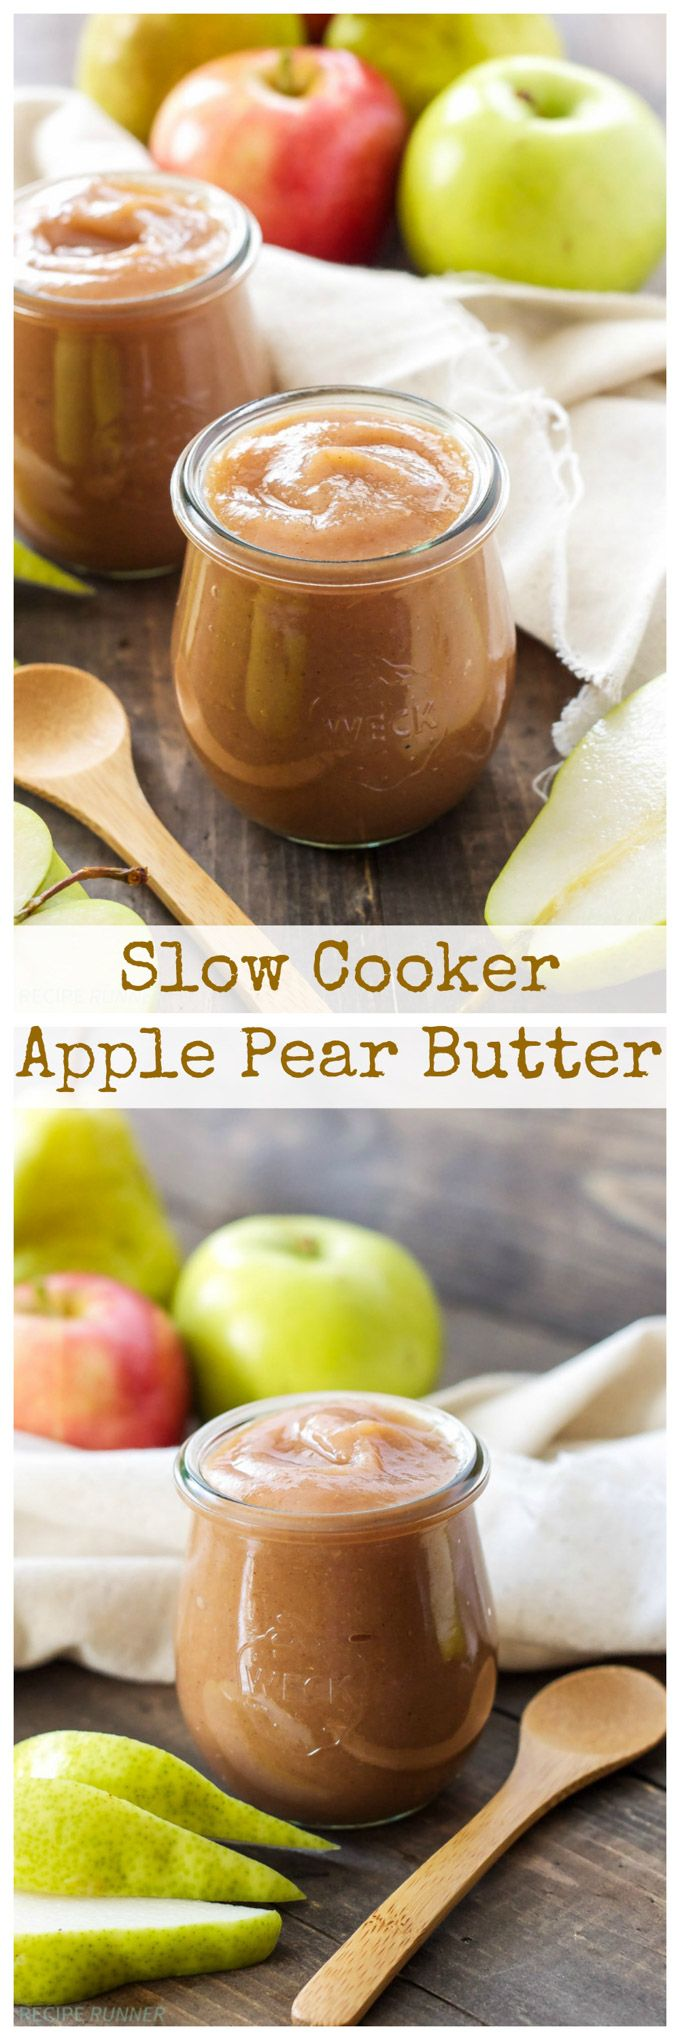 Slow Cooker Apple Pear Butter   This easy to make fall condiment is     Slow Cooker Apple Pear Butter   This easy to make fall condiment is rich in  flavor and perfect for both sweet and savory dishes